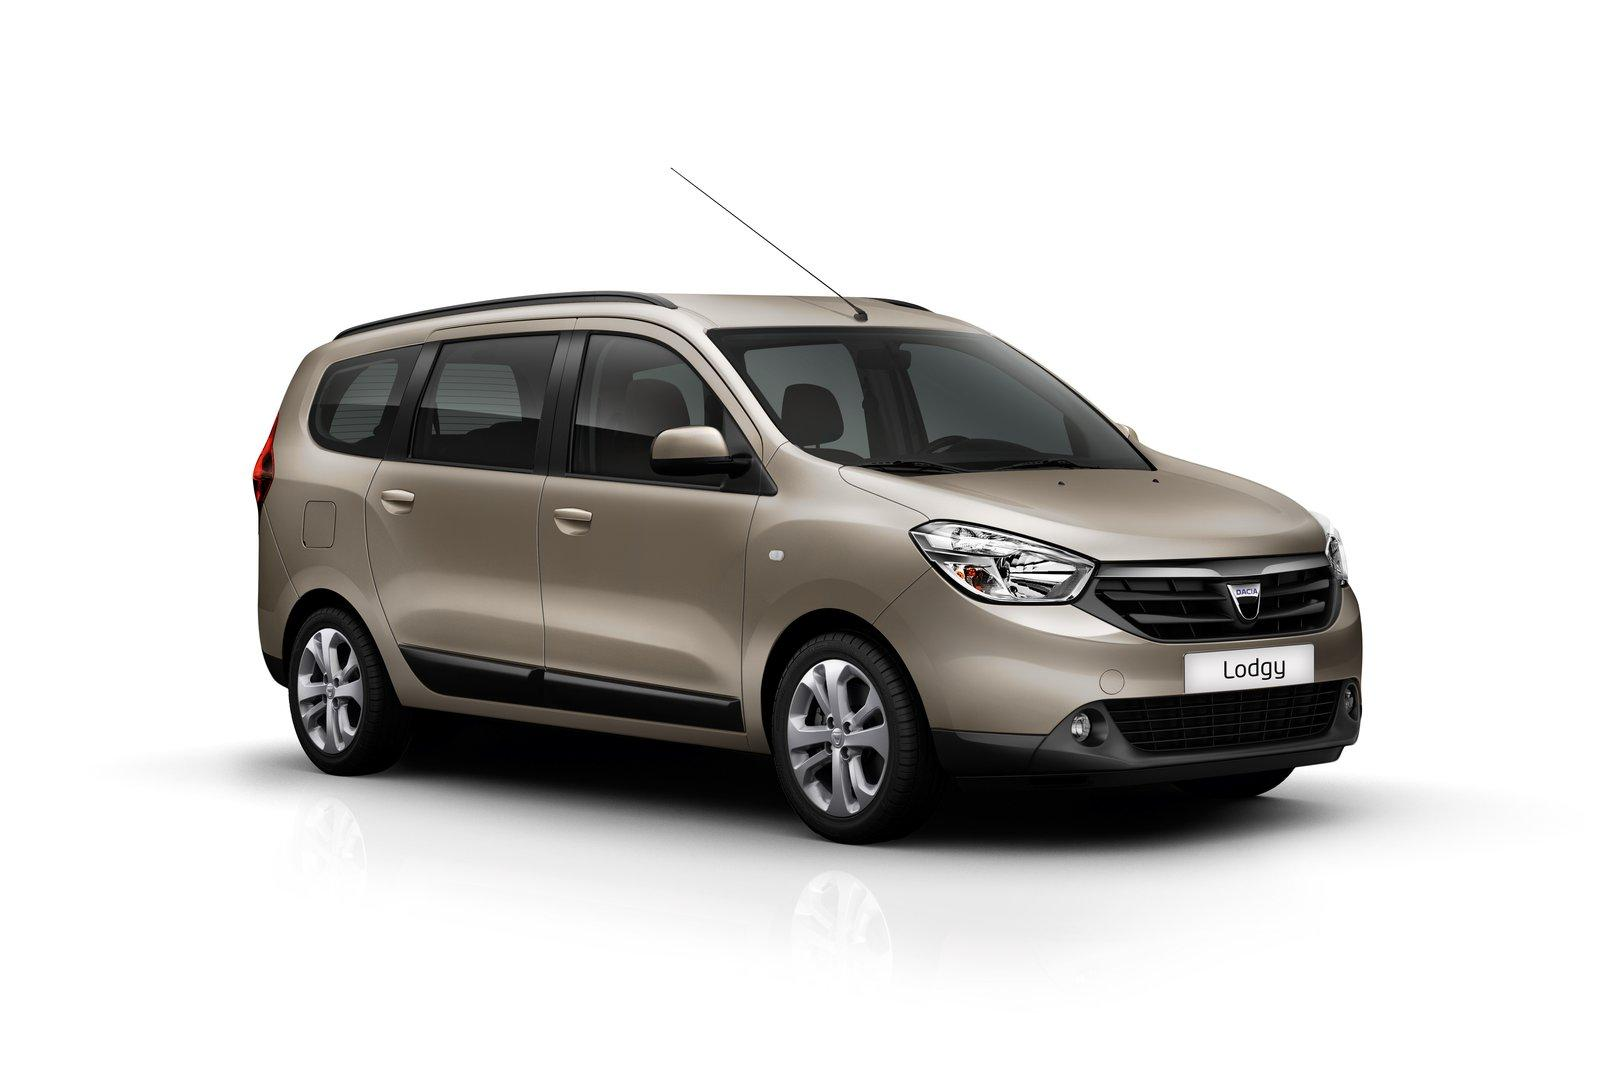 Dacia Lodgy Pricing package of Renault